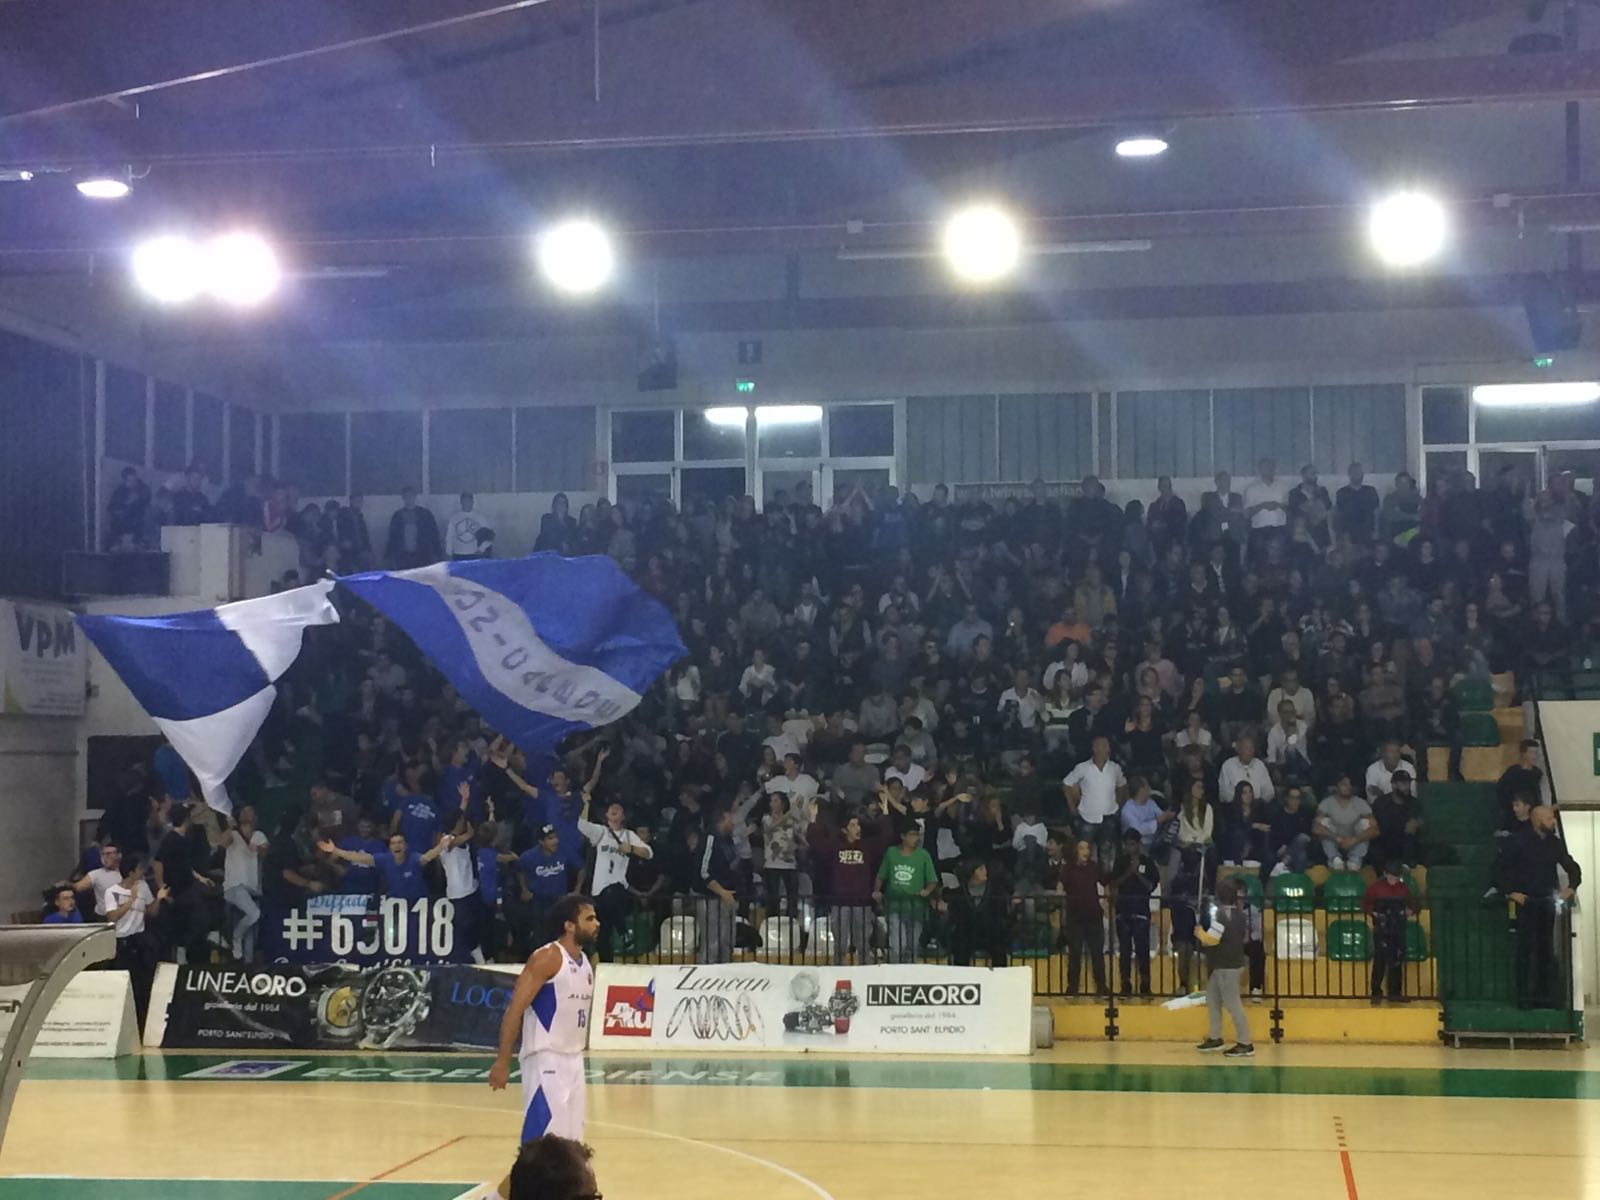 Verso il derby, Montegranaro super favorita ma…